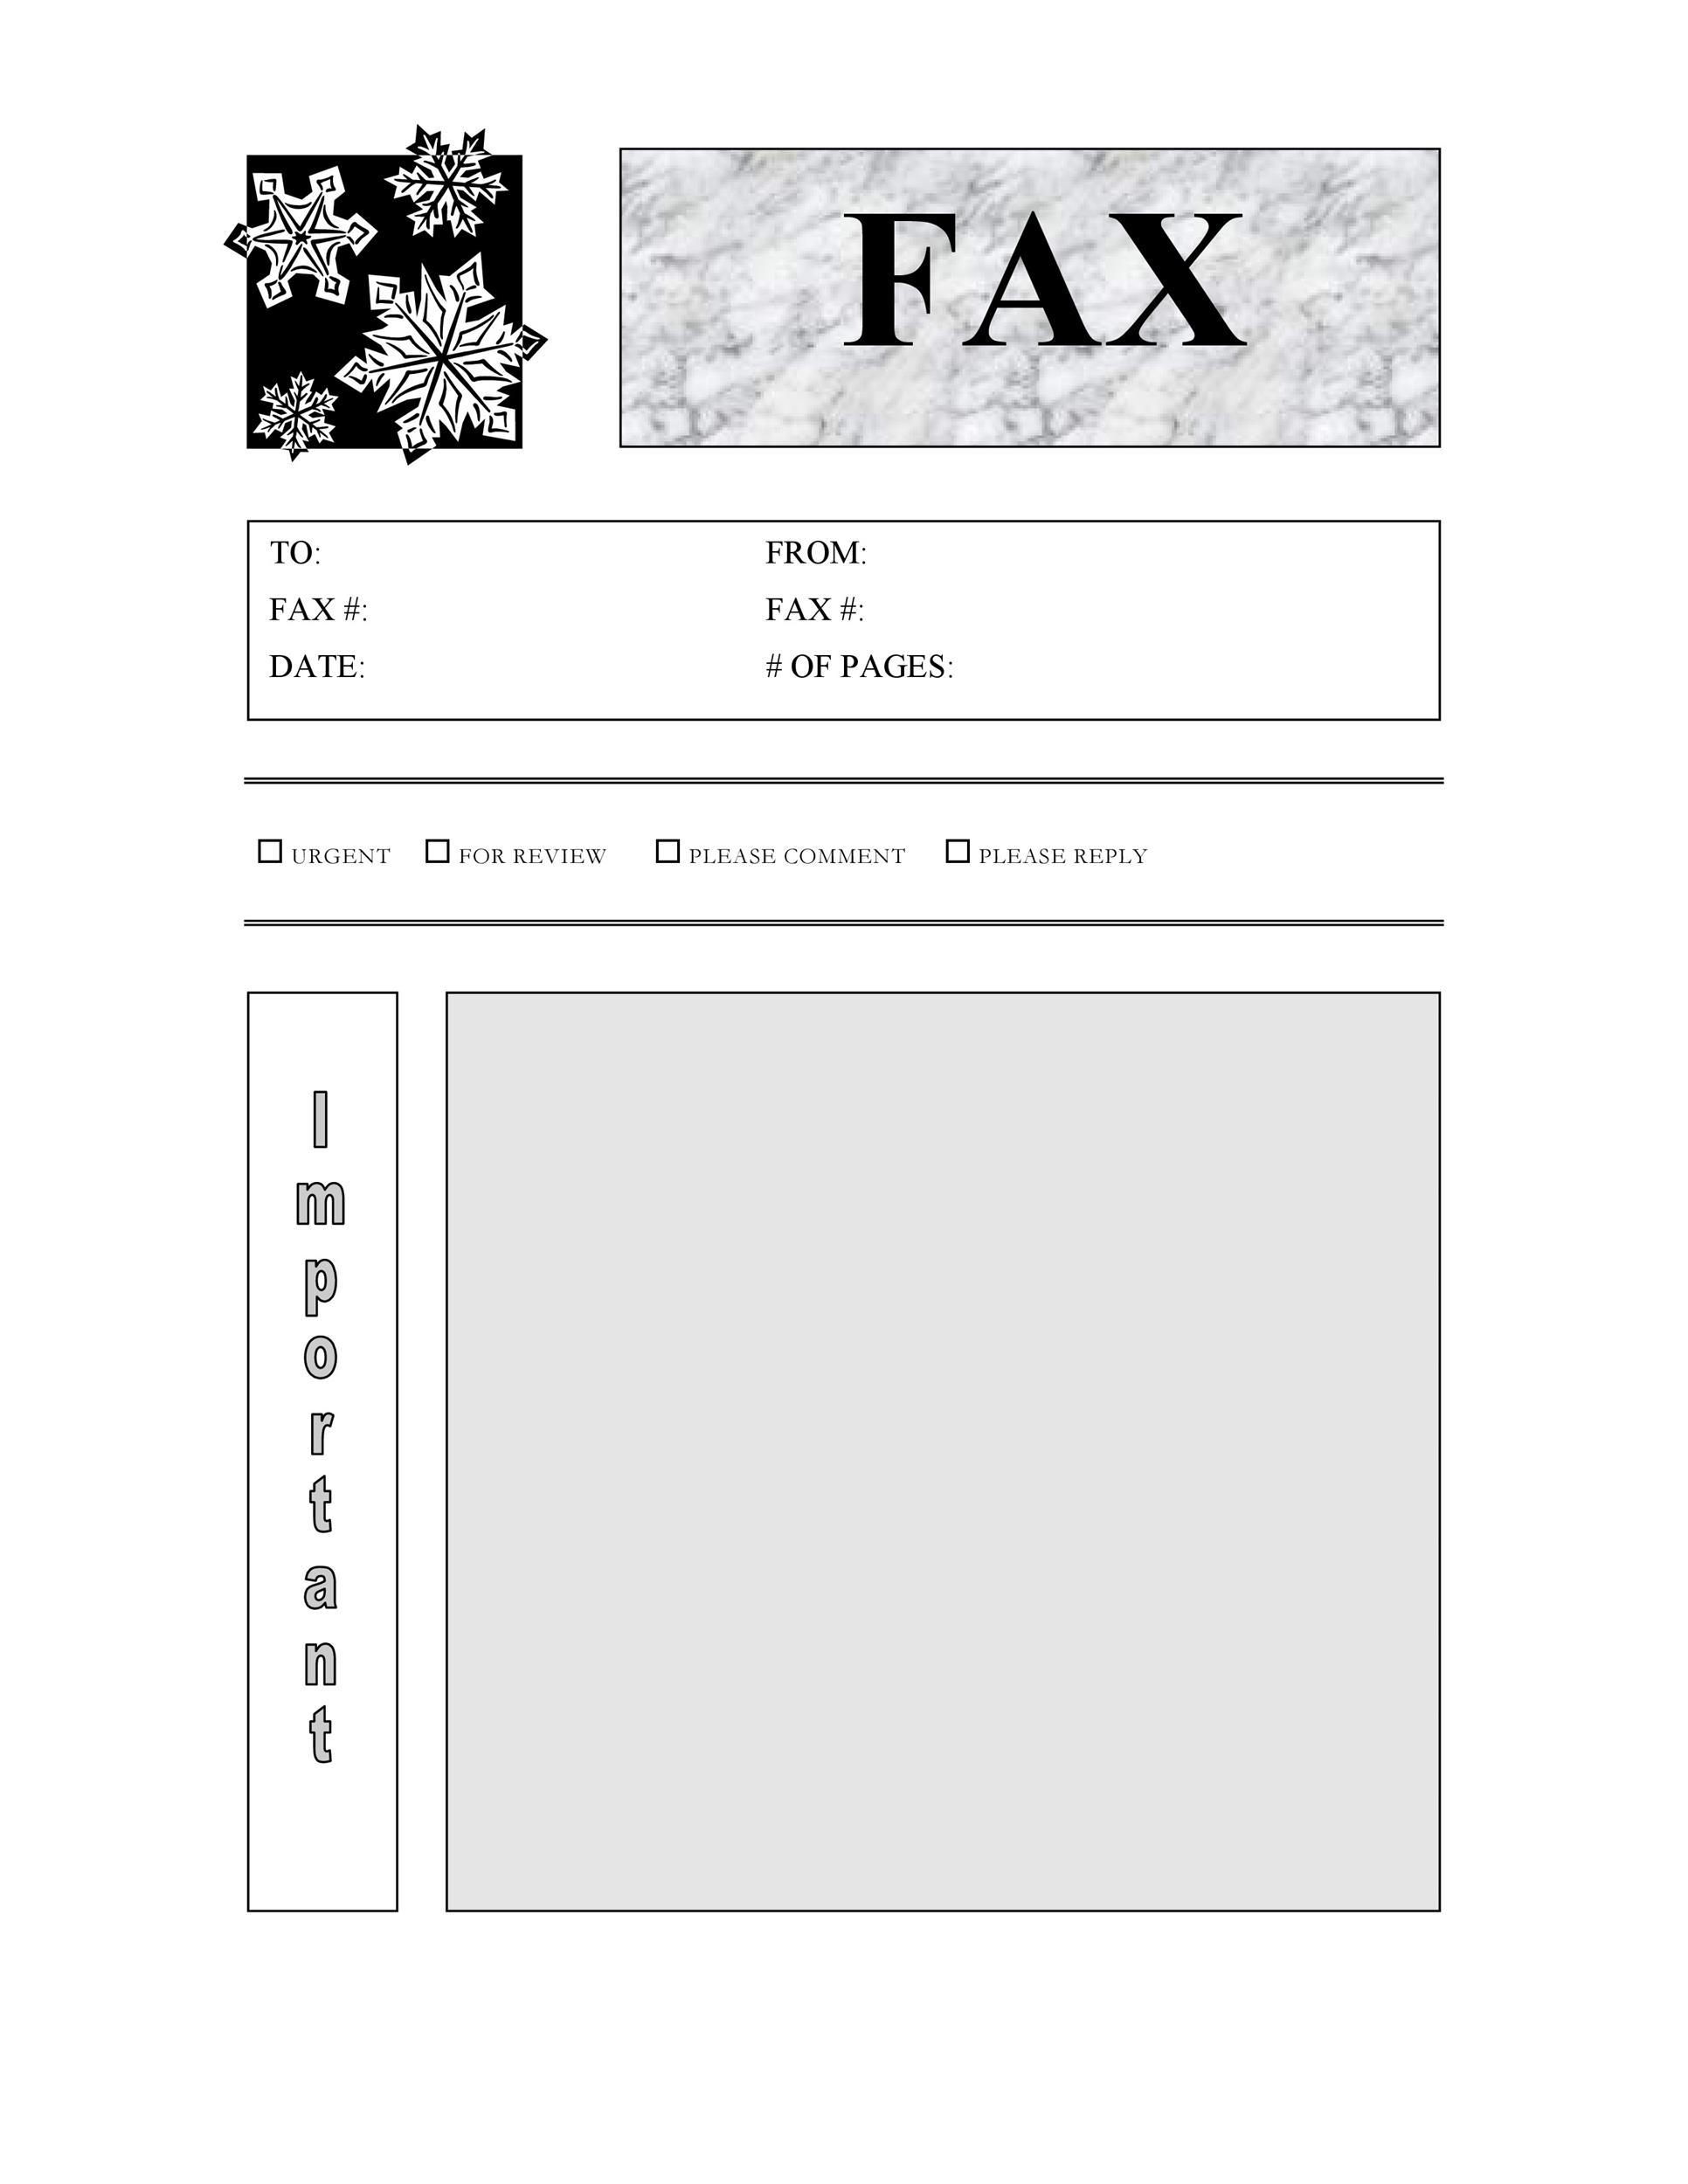 Free Fax Cover sheet Template 16